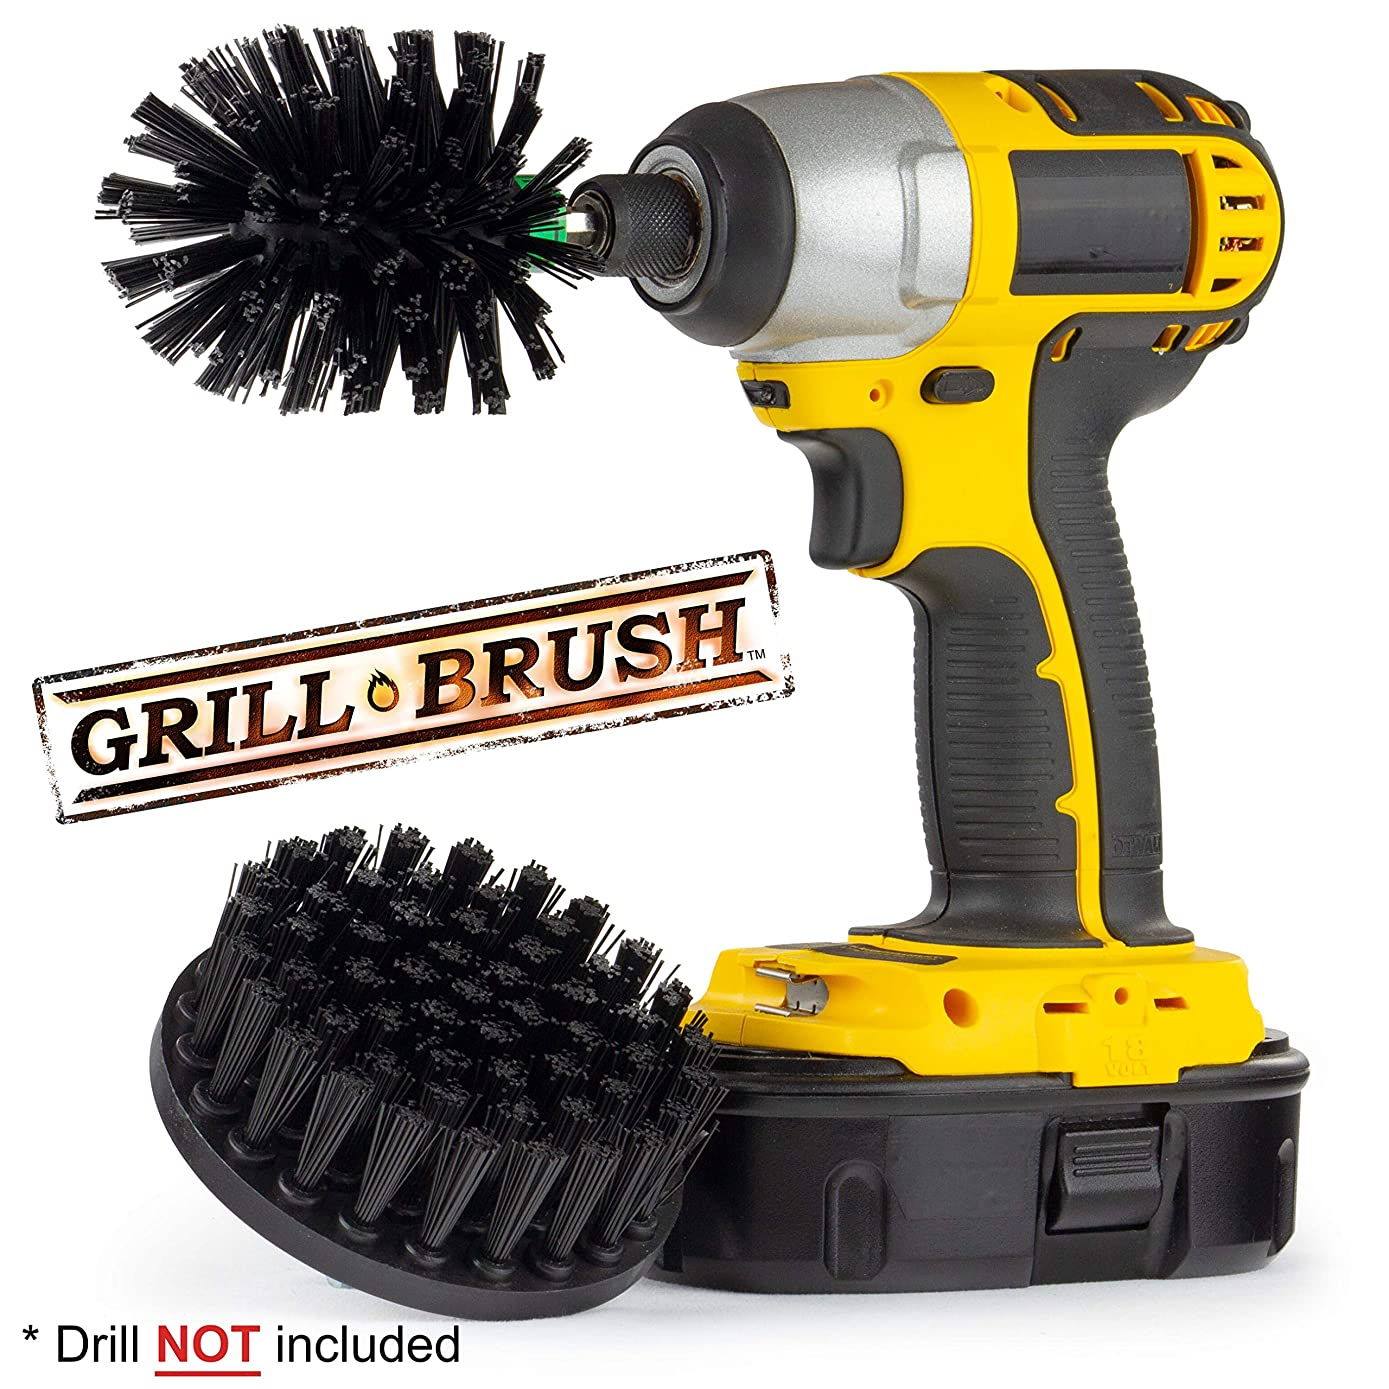 BBQ Grill Brush - Grill Accessories - BBQ Grill - Grill Cleaner - Grill Tools - BBQ Brush - Electric Smoker - Smokers and Grills - Grill Scraper - BBQ Tools